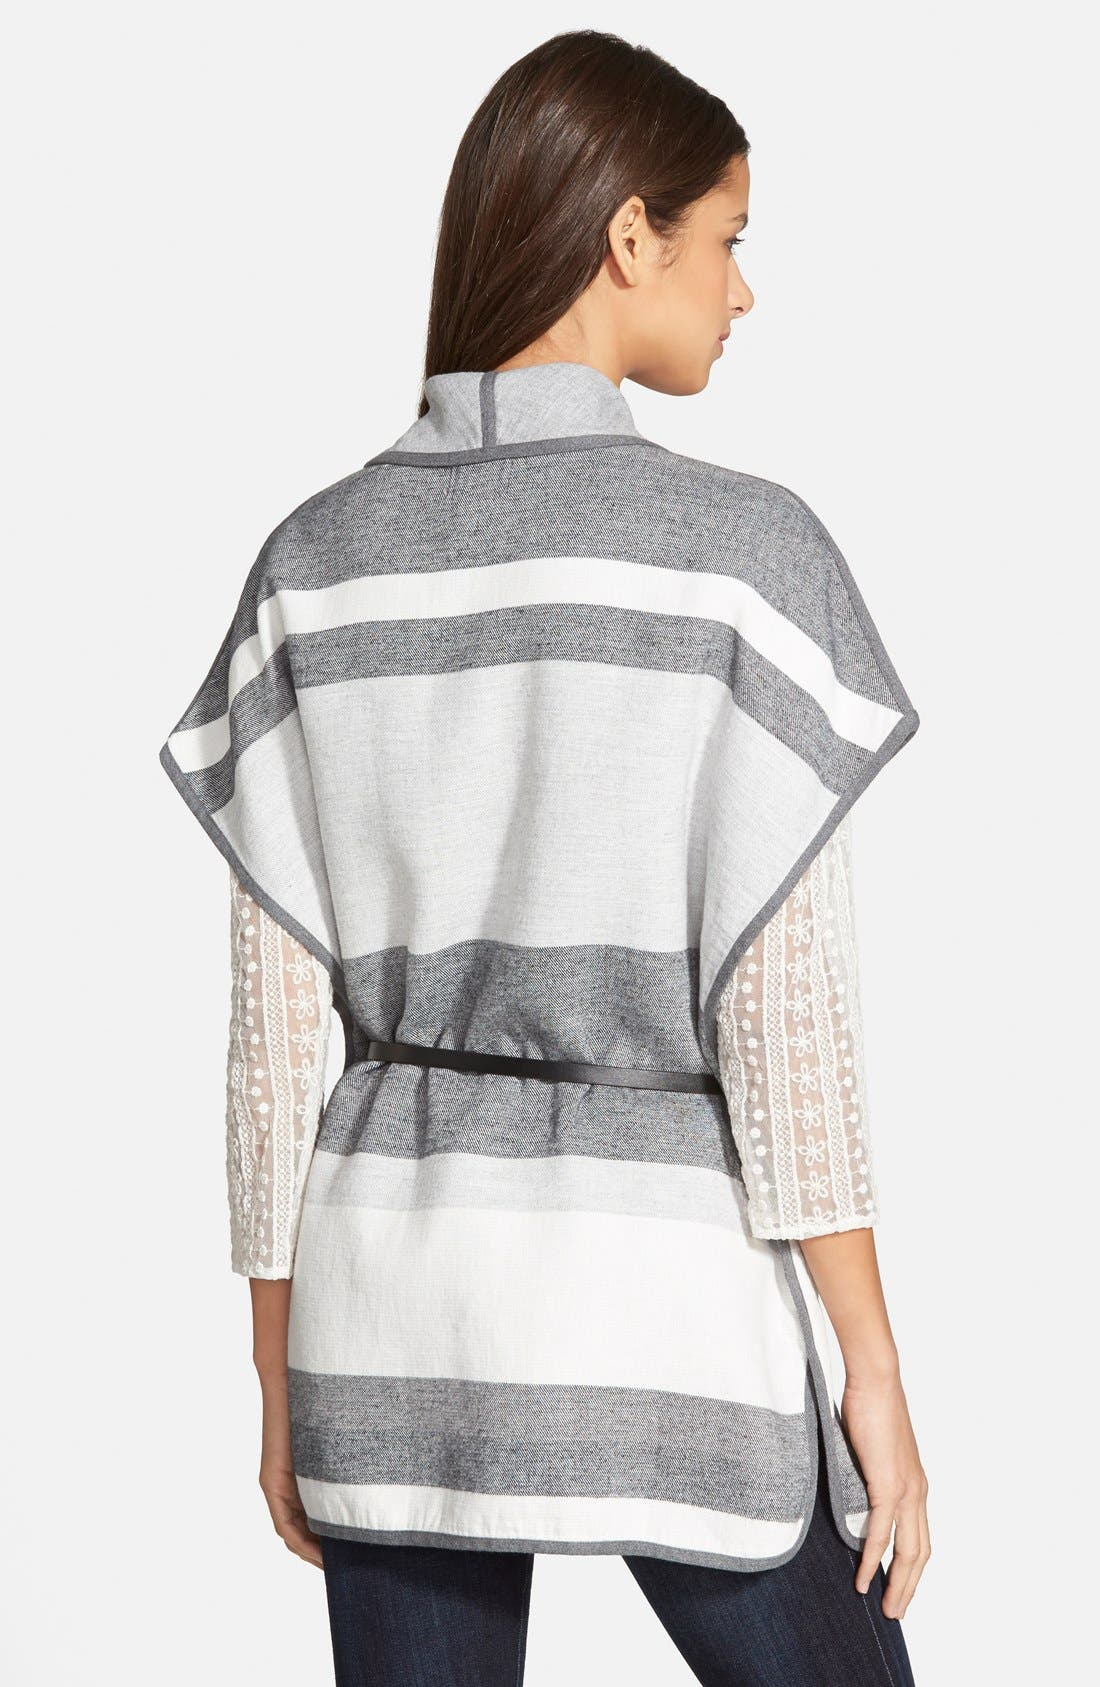 HINGE, Stripe Cape, Alternate thumbnail 2, color, 020